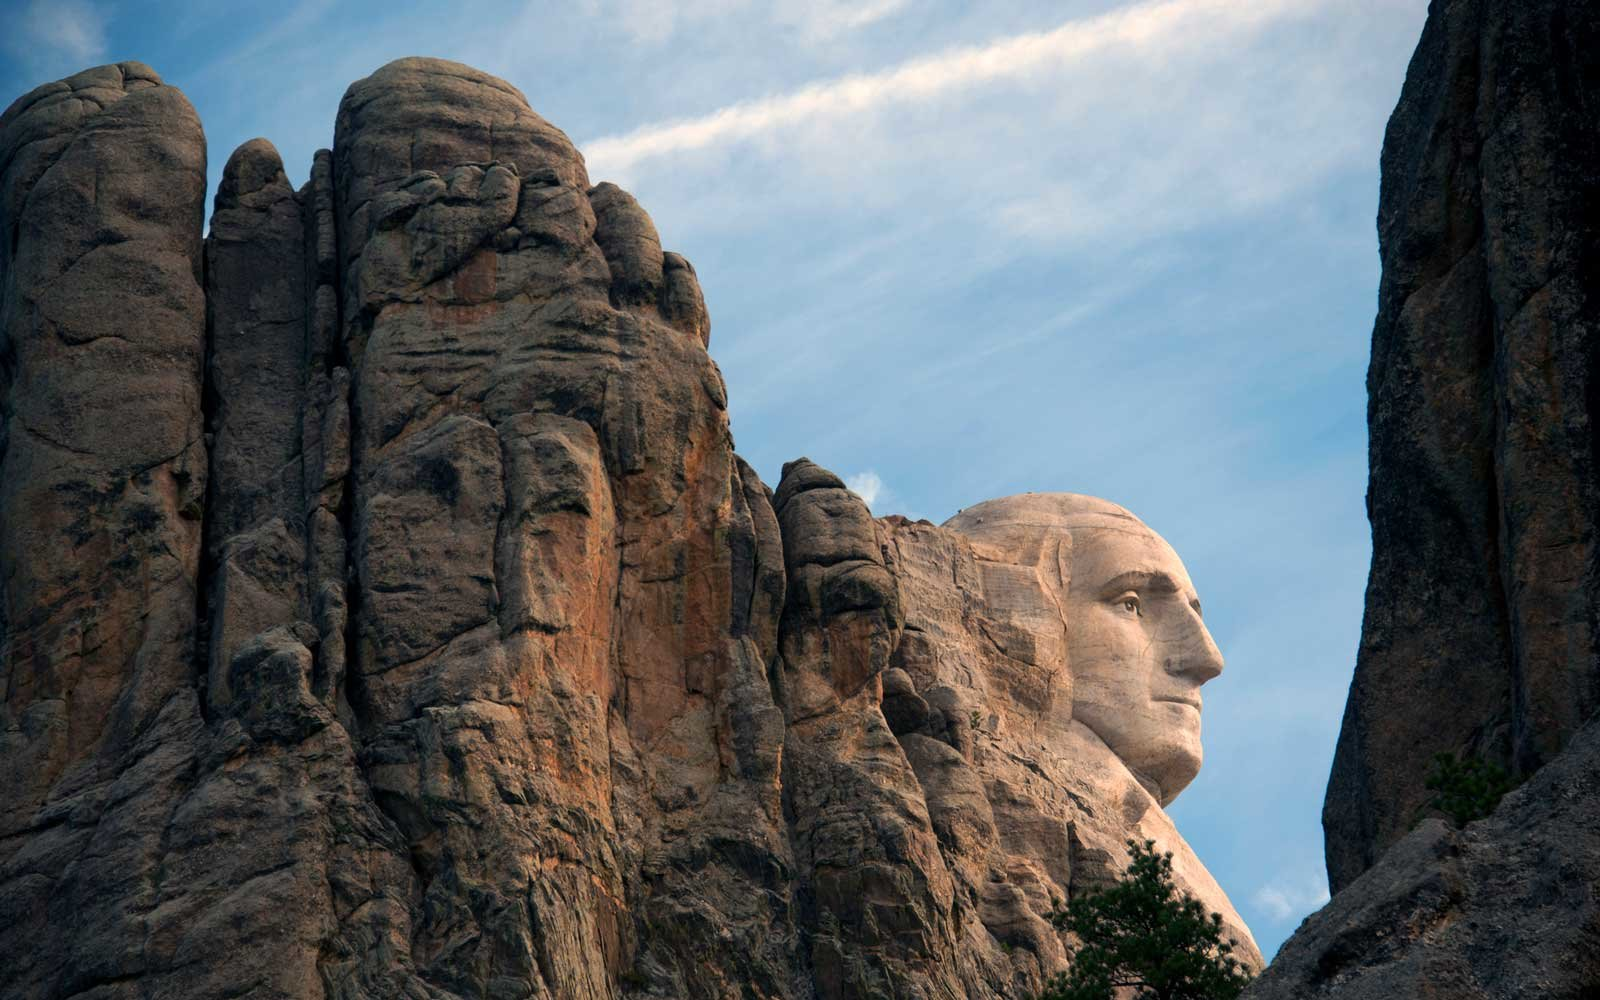 Side view of the famed Mt. Rushmore National Monument, South Dakota